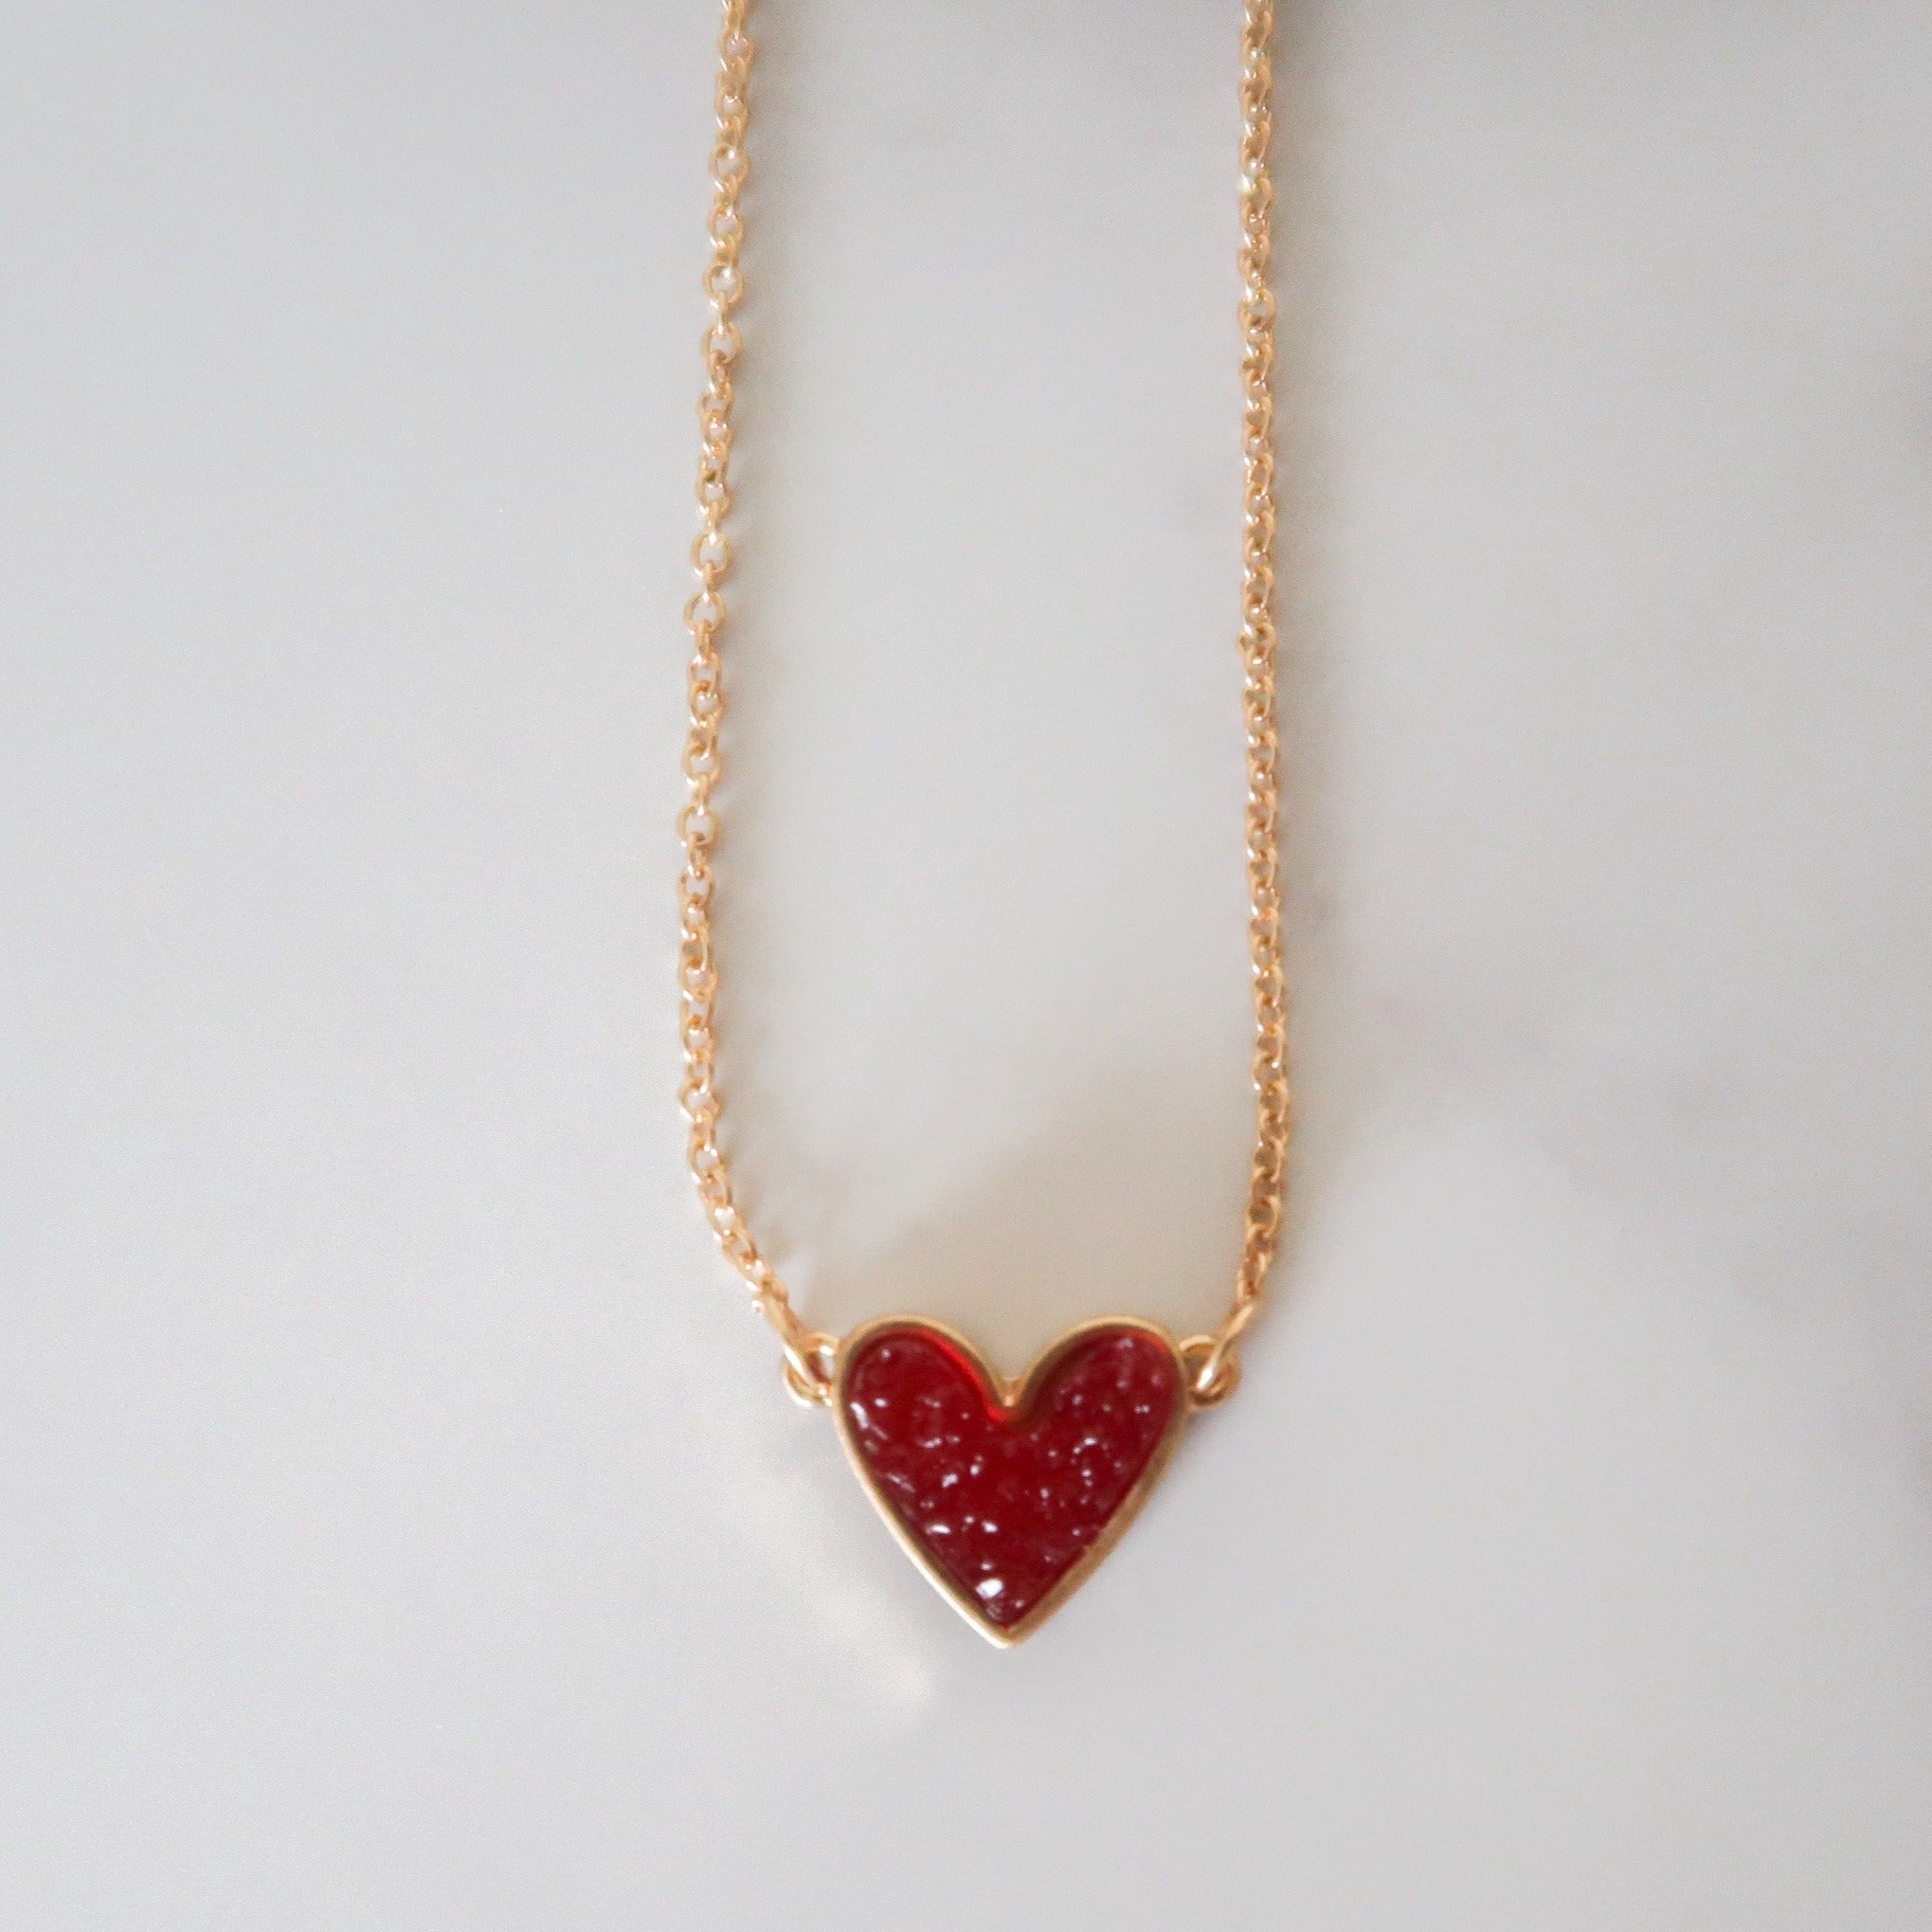 Druzy Heart Pendant Necklace